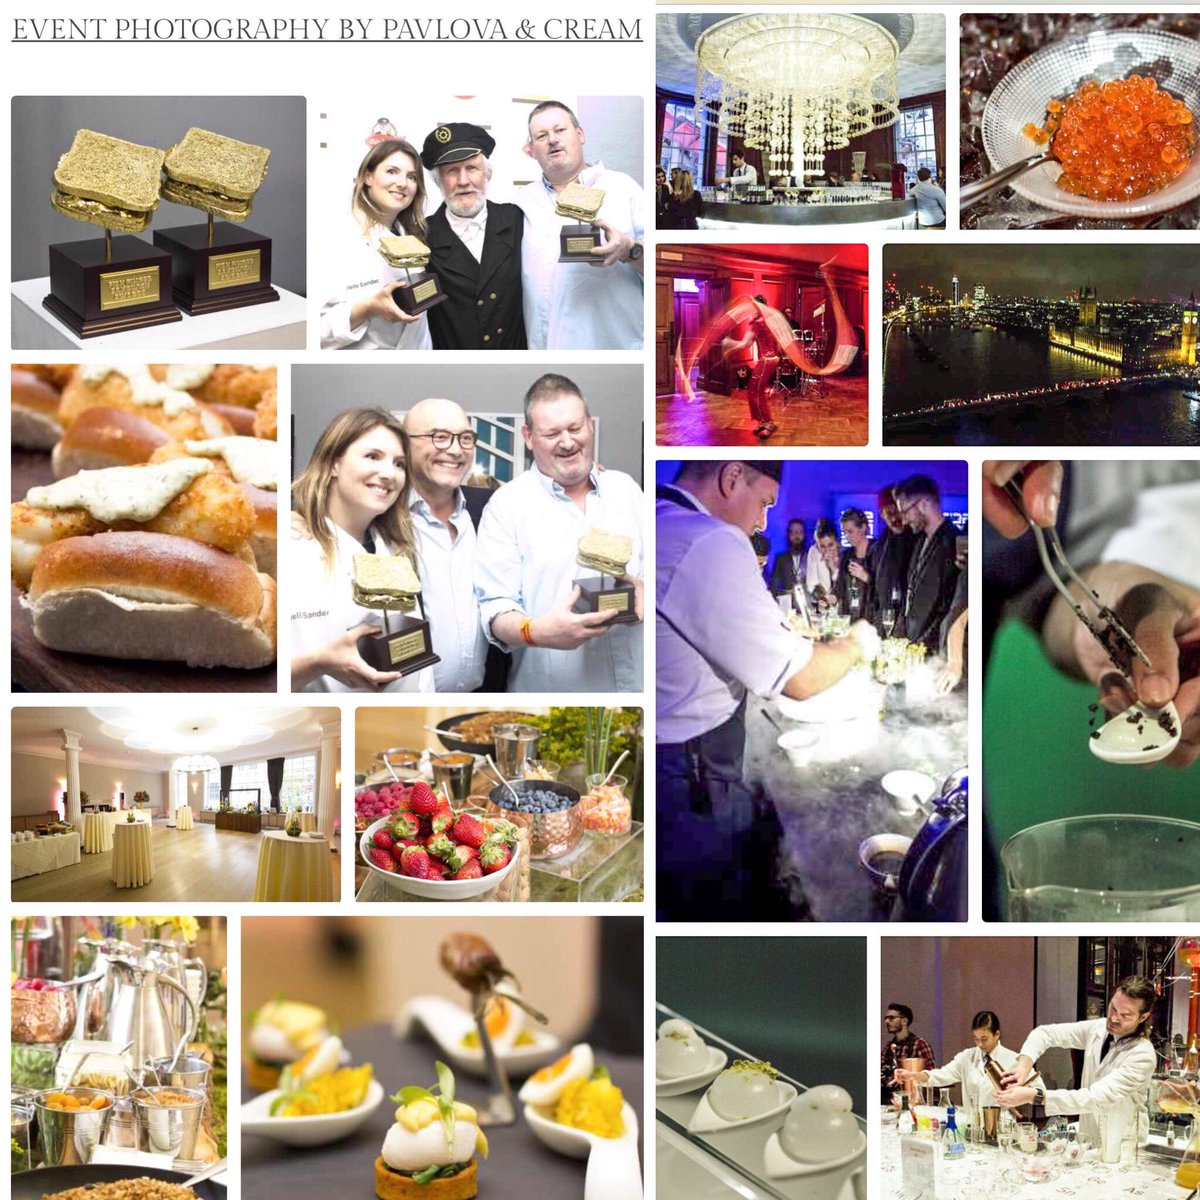 Have you booked your #christmasparty photographer yet?  http:// pavlovaandcream.com/event-photogra phy &nbsp; …  #Eventprofs @SmoothiePR @squaremealvande @RedKitePR @chandco<br>http://pic.twitter.com/R0ziASuBds